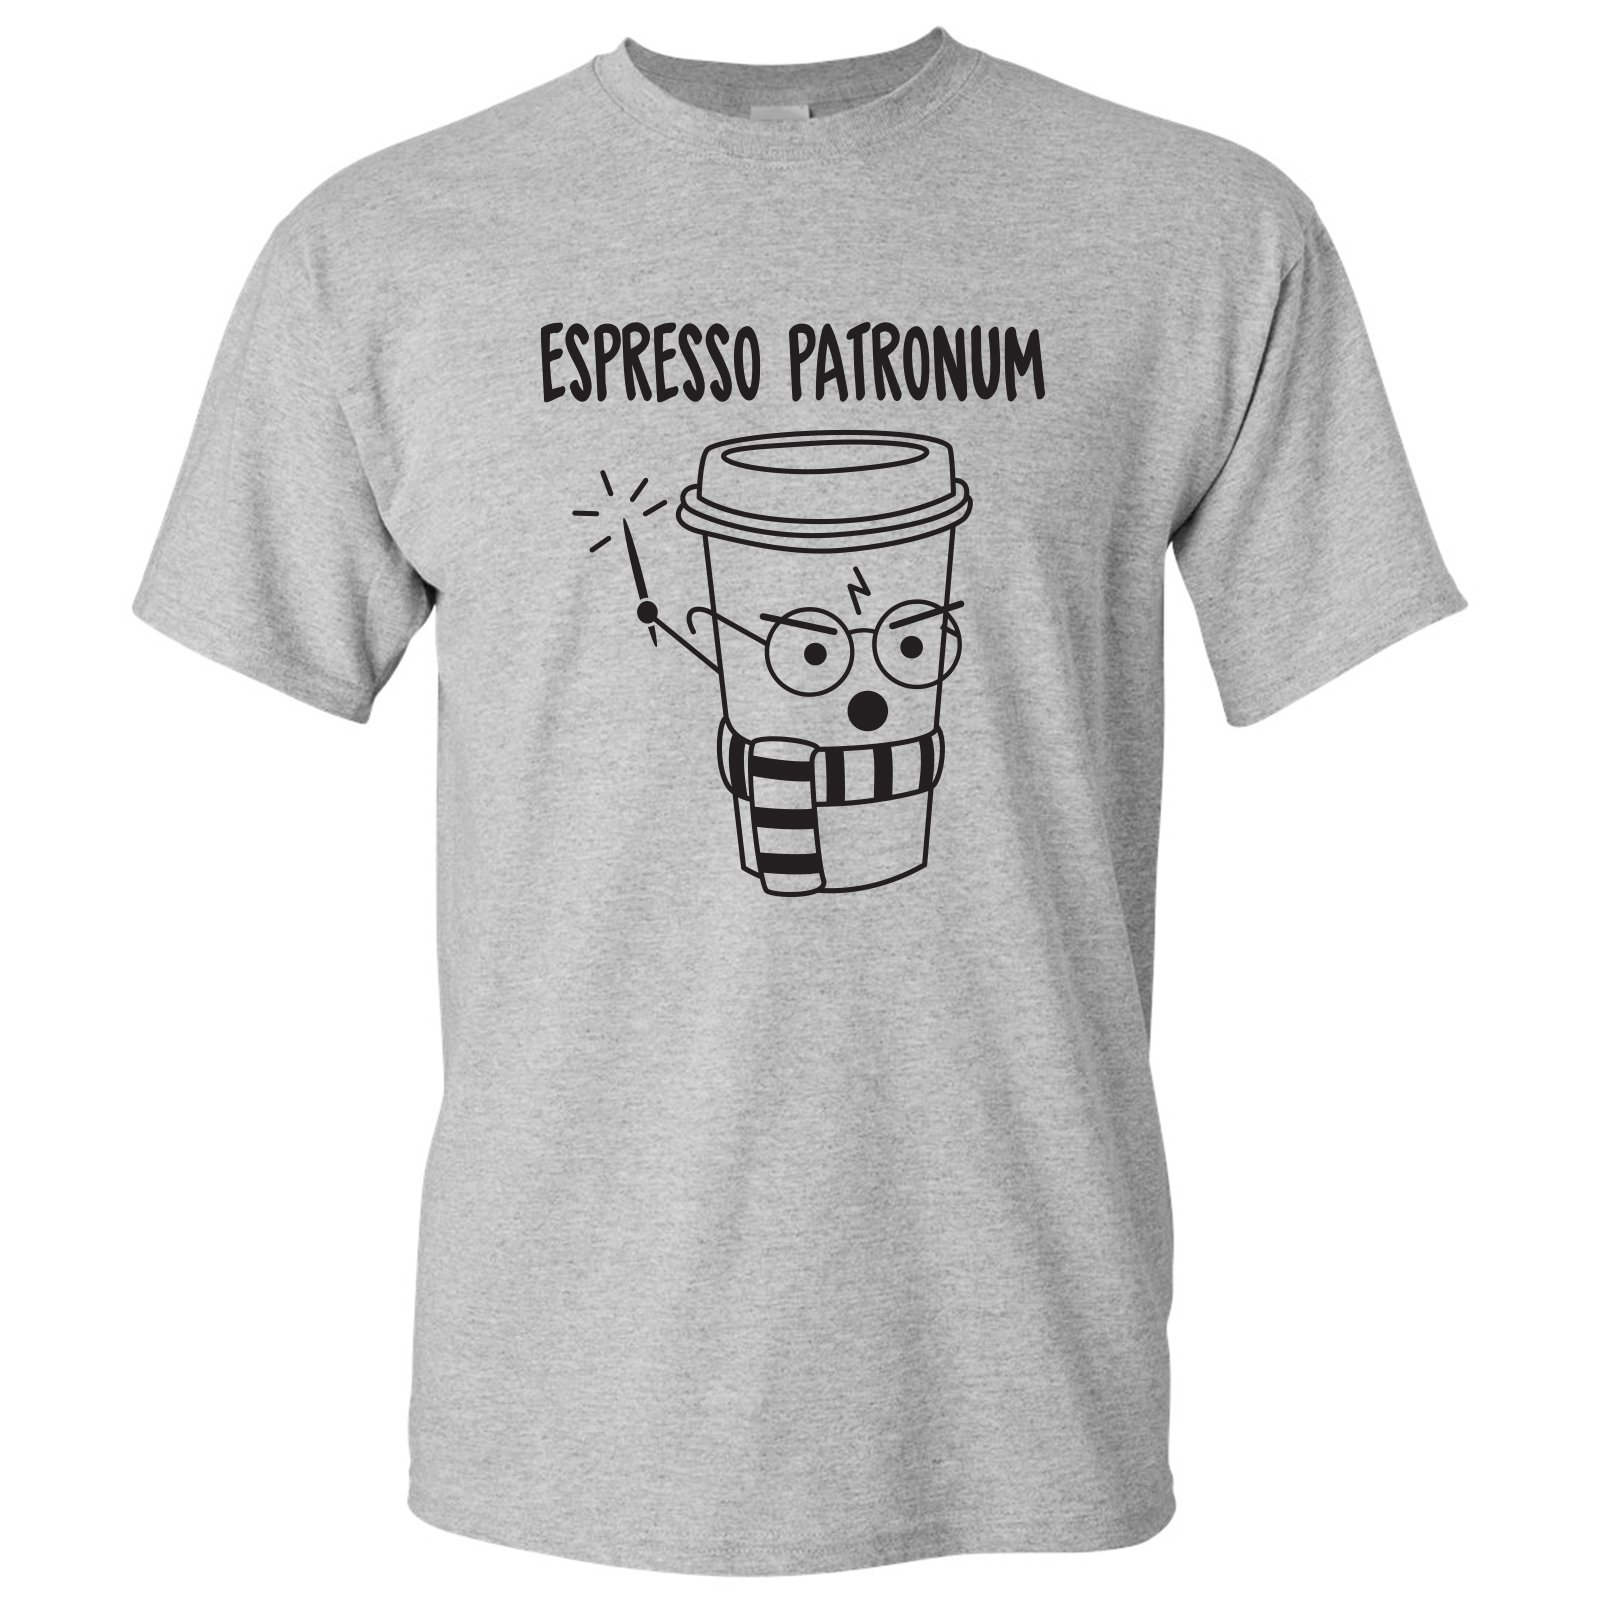 Espresso Patronum Basic Cotton T-Shirt - Large - Sport Grey w/ Black